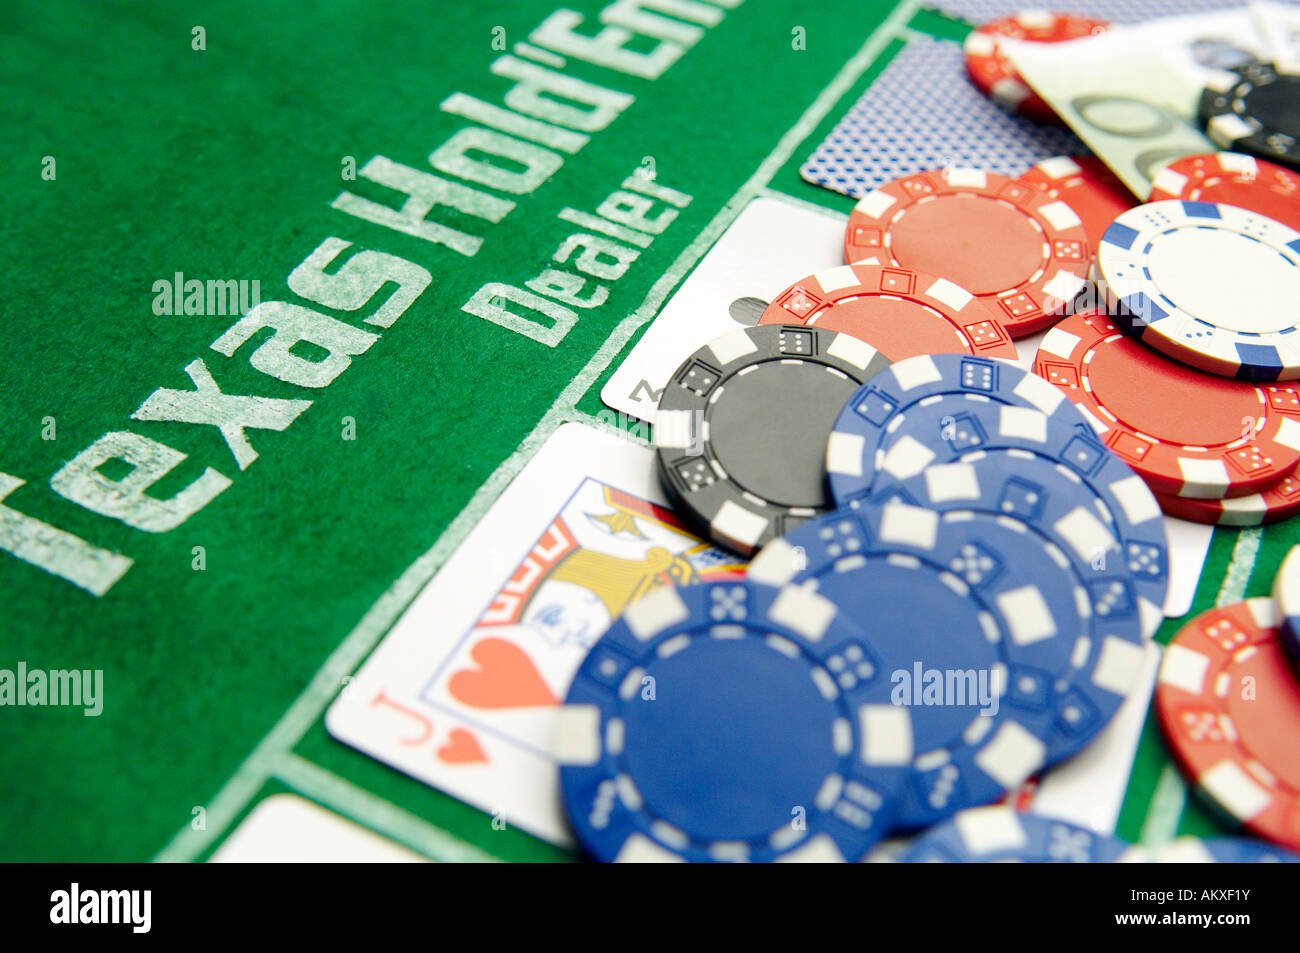 Texas Hold'em Poker Dealer with cards and chips - Stock Image